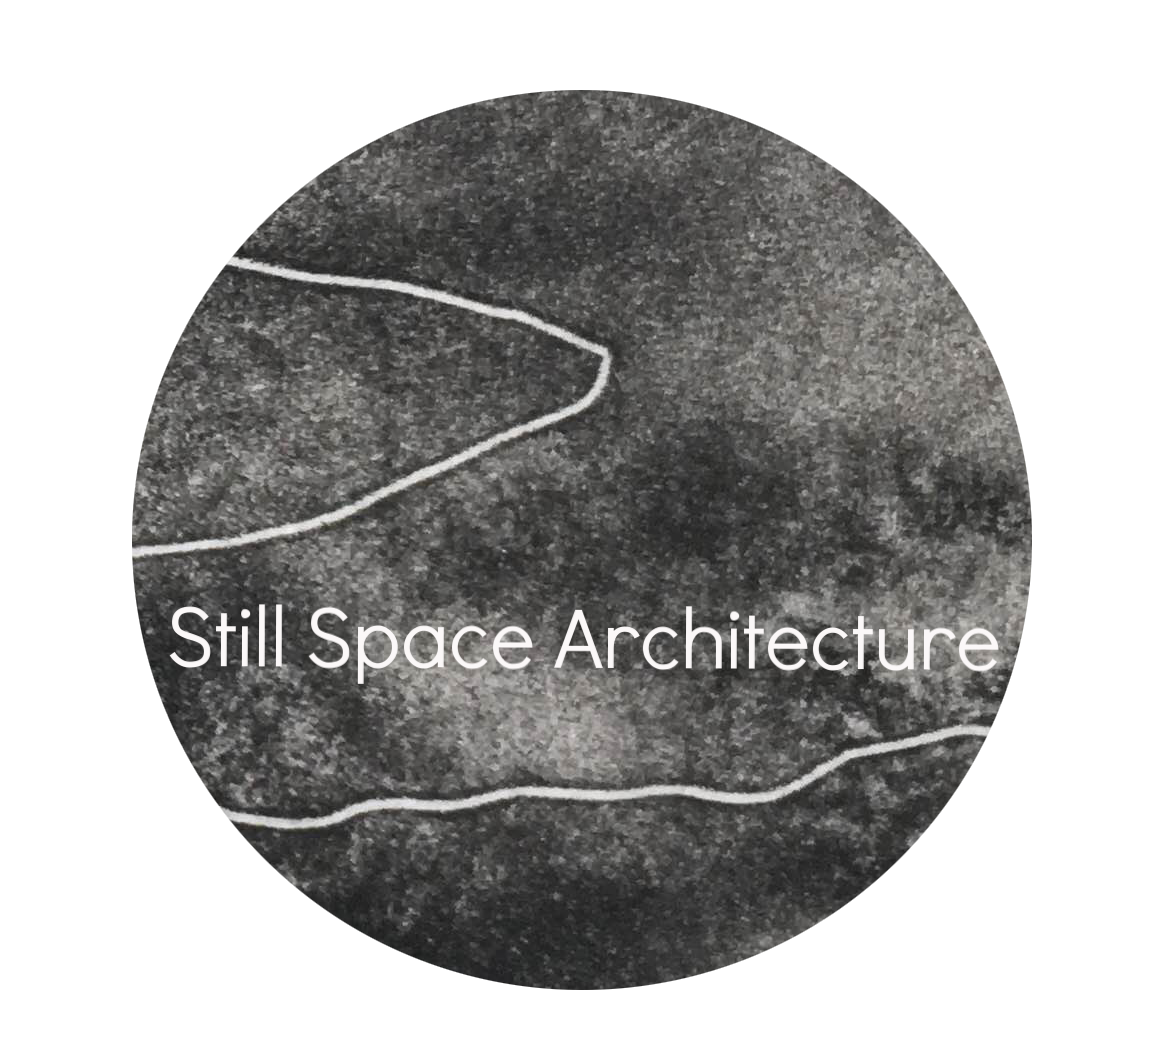 Still Space Architecture